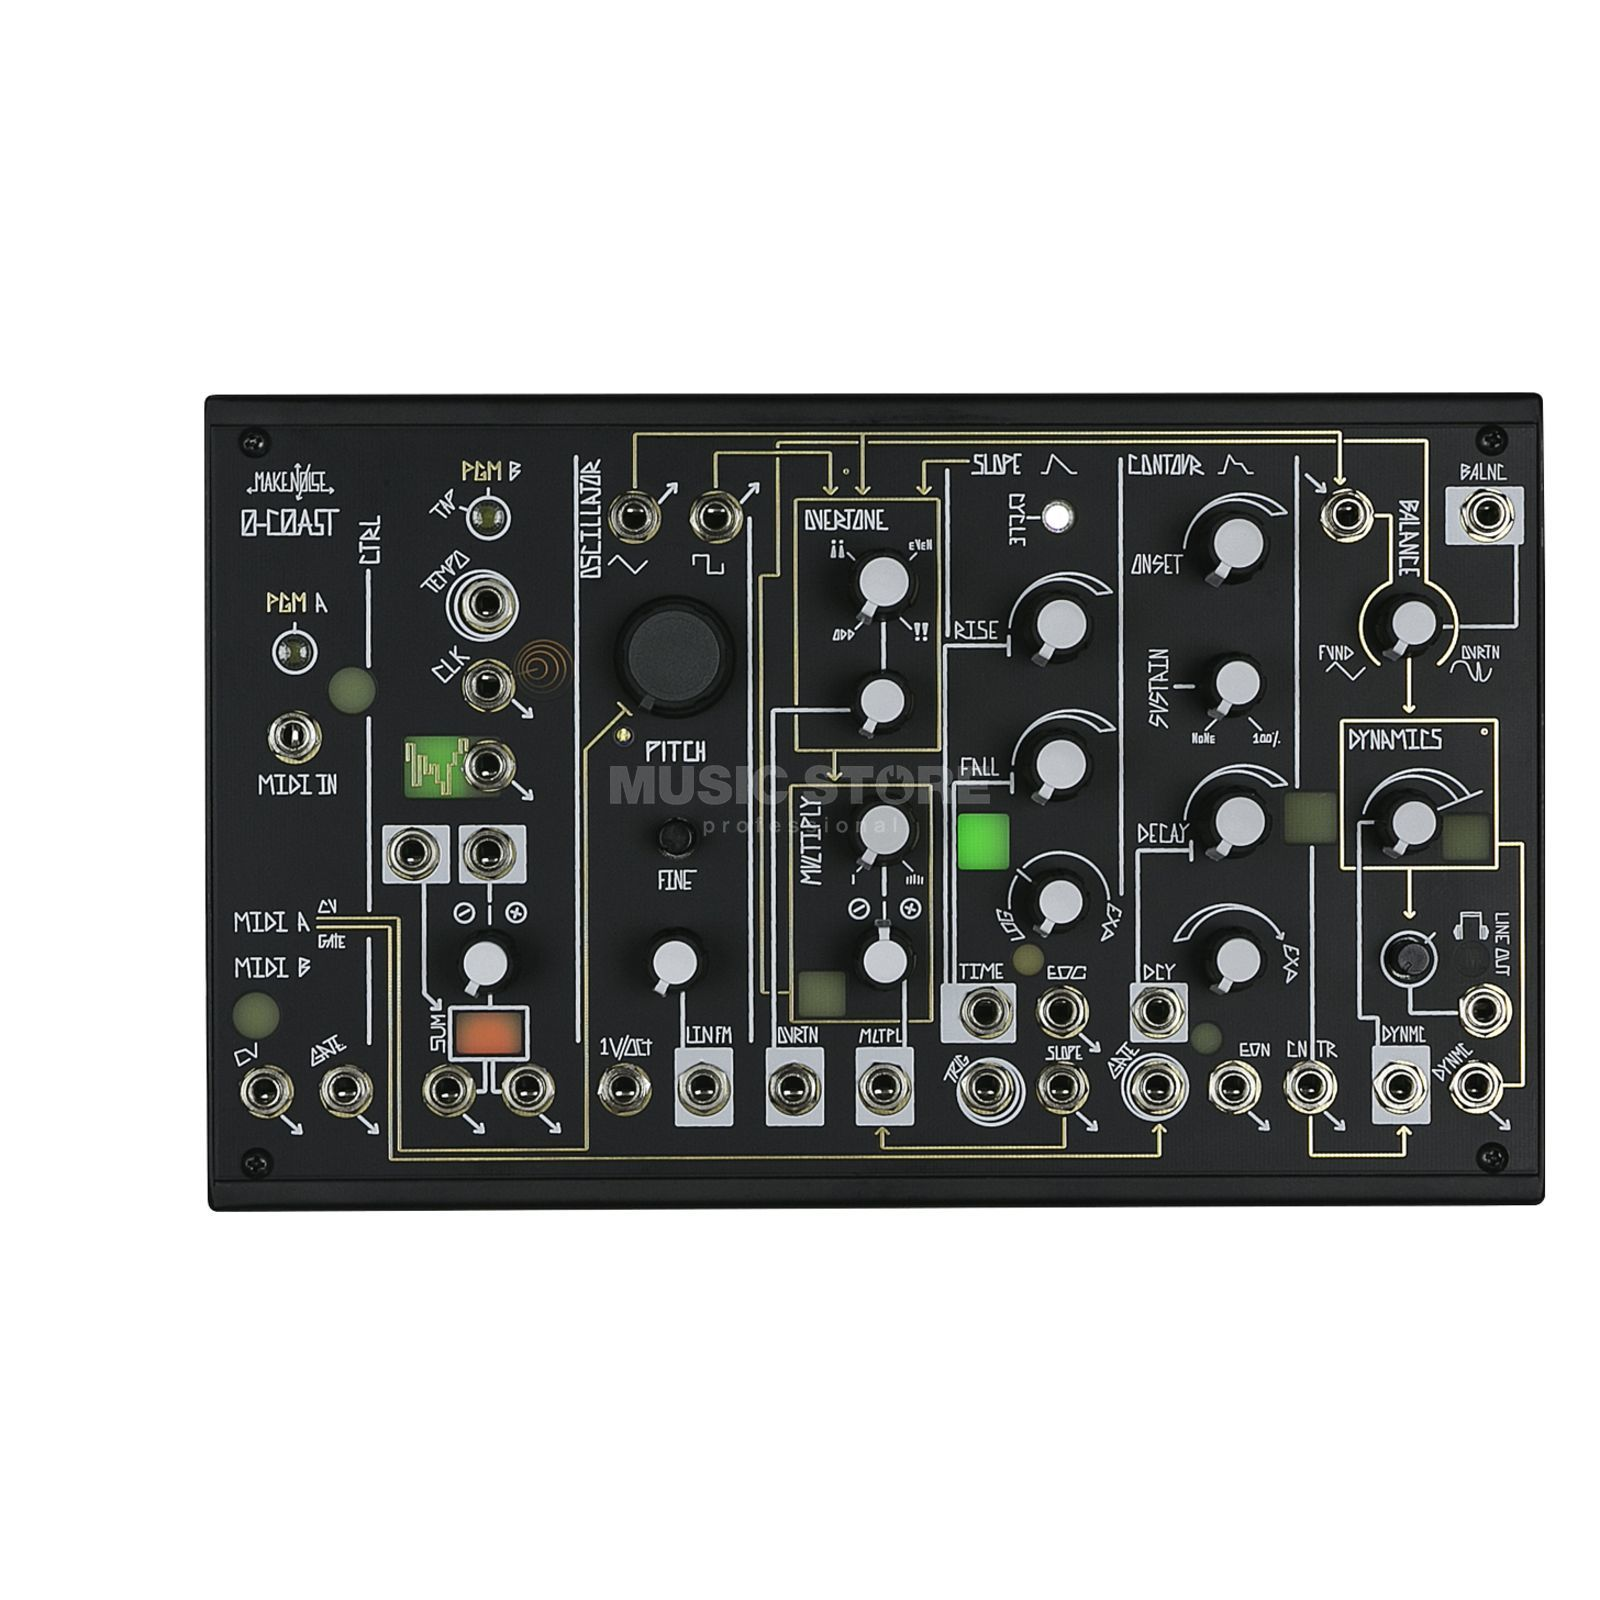 Make Noise 0-COAST Patchable Mono Synthesizer Produktbillede